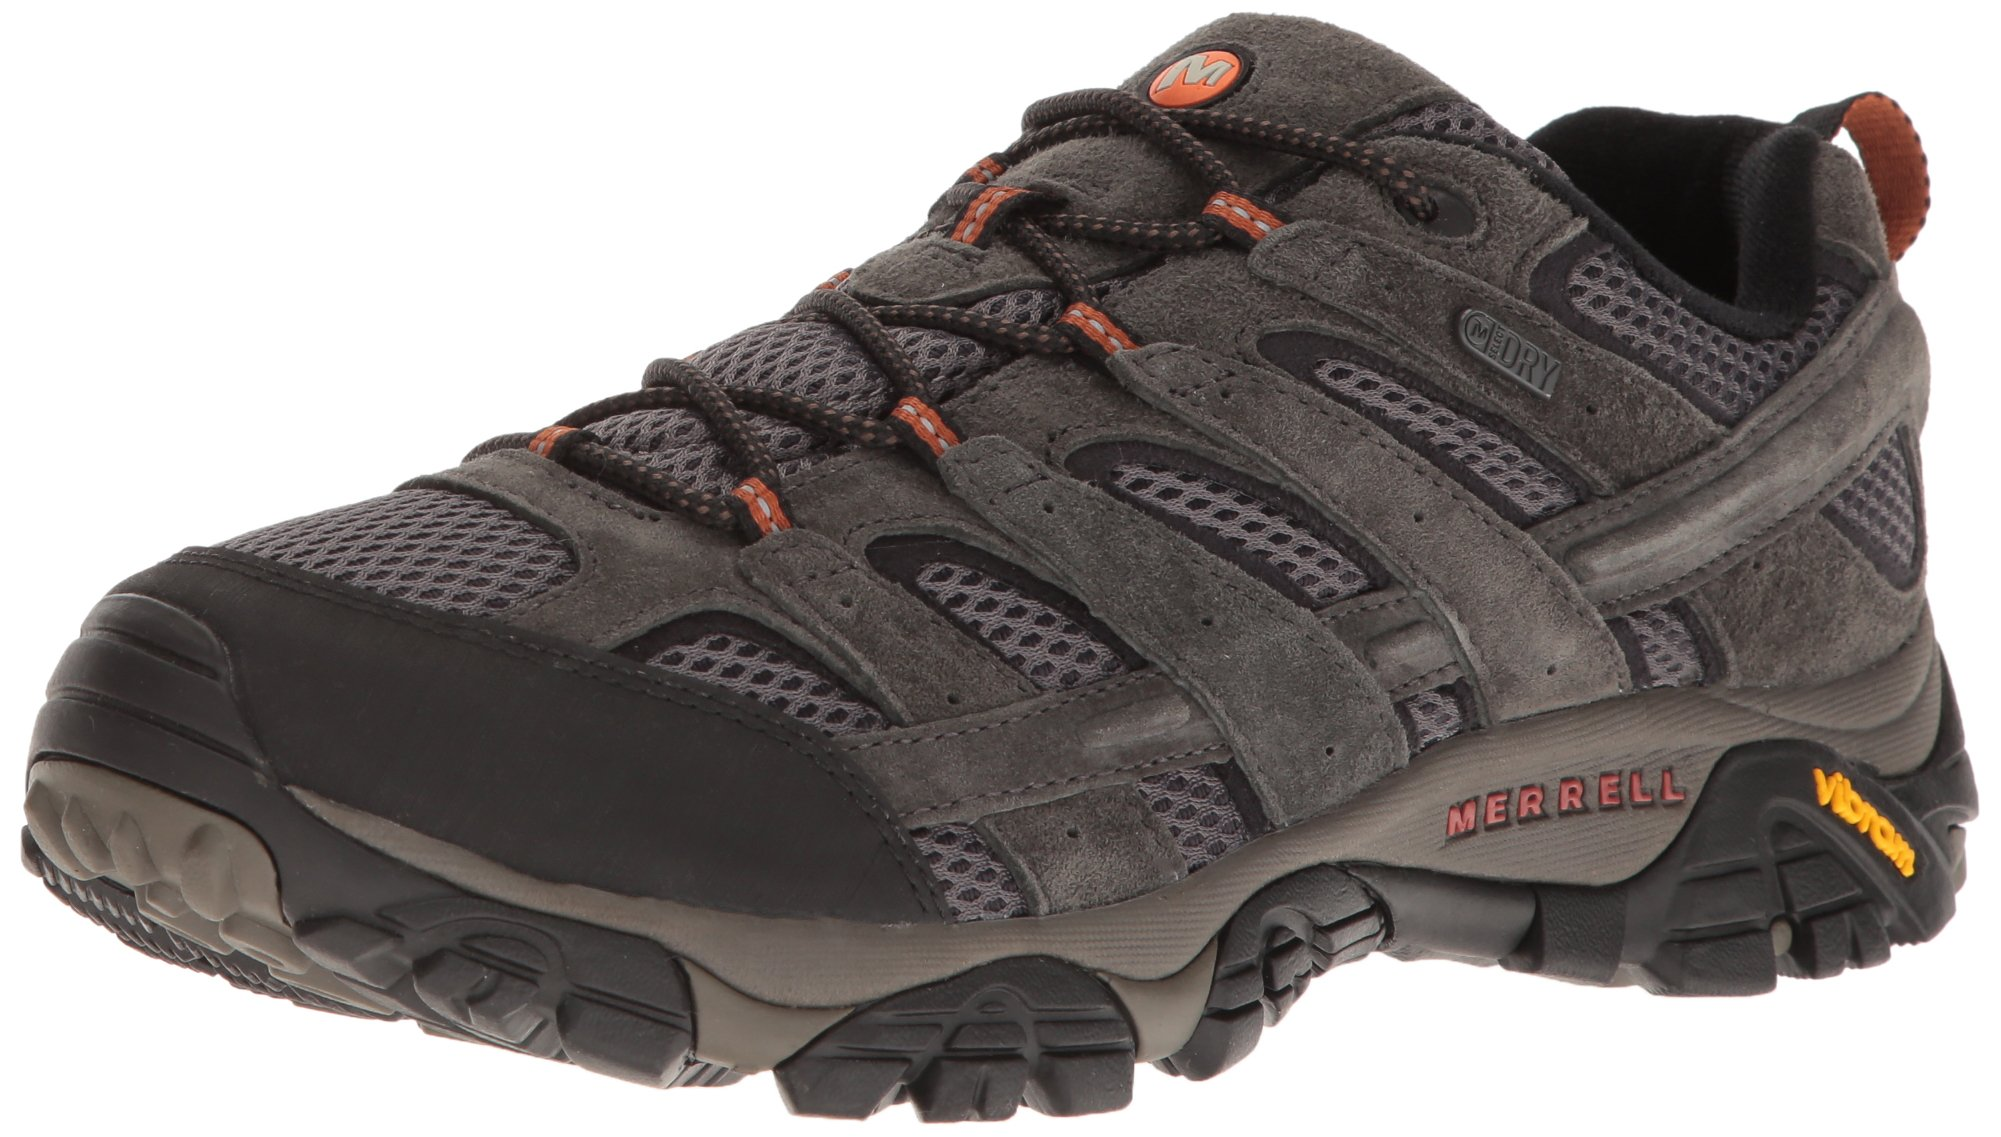 Merrell Men's Moab 2 Waterproof Hiking Shoe, Beluga, 8 M US